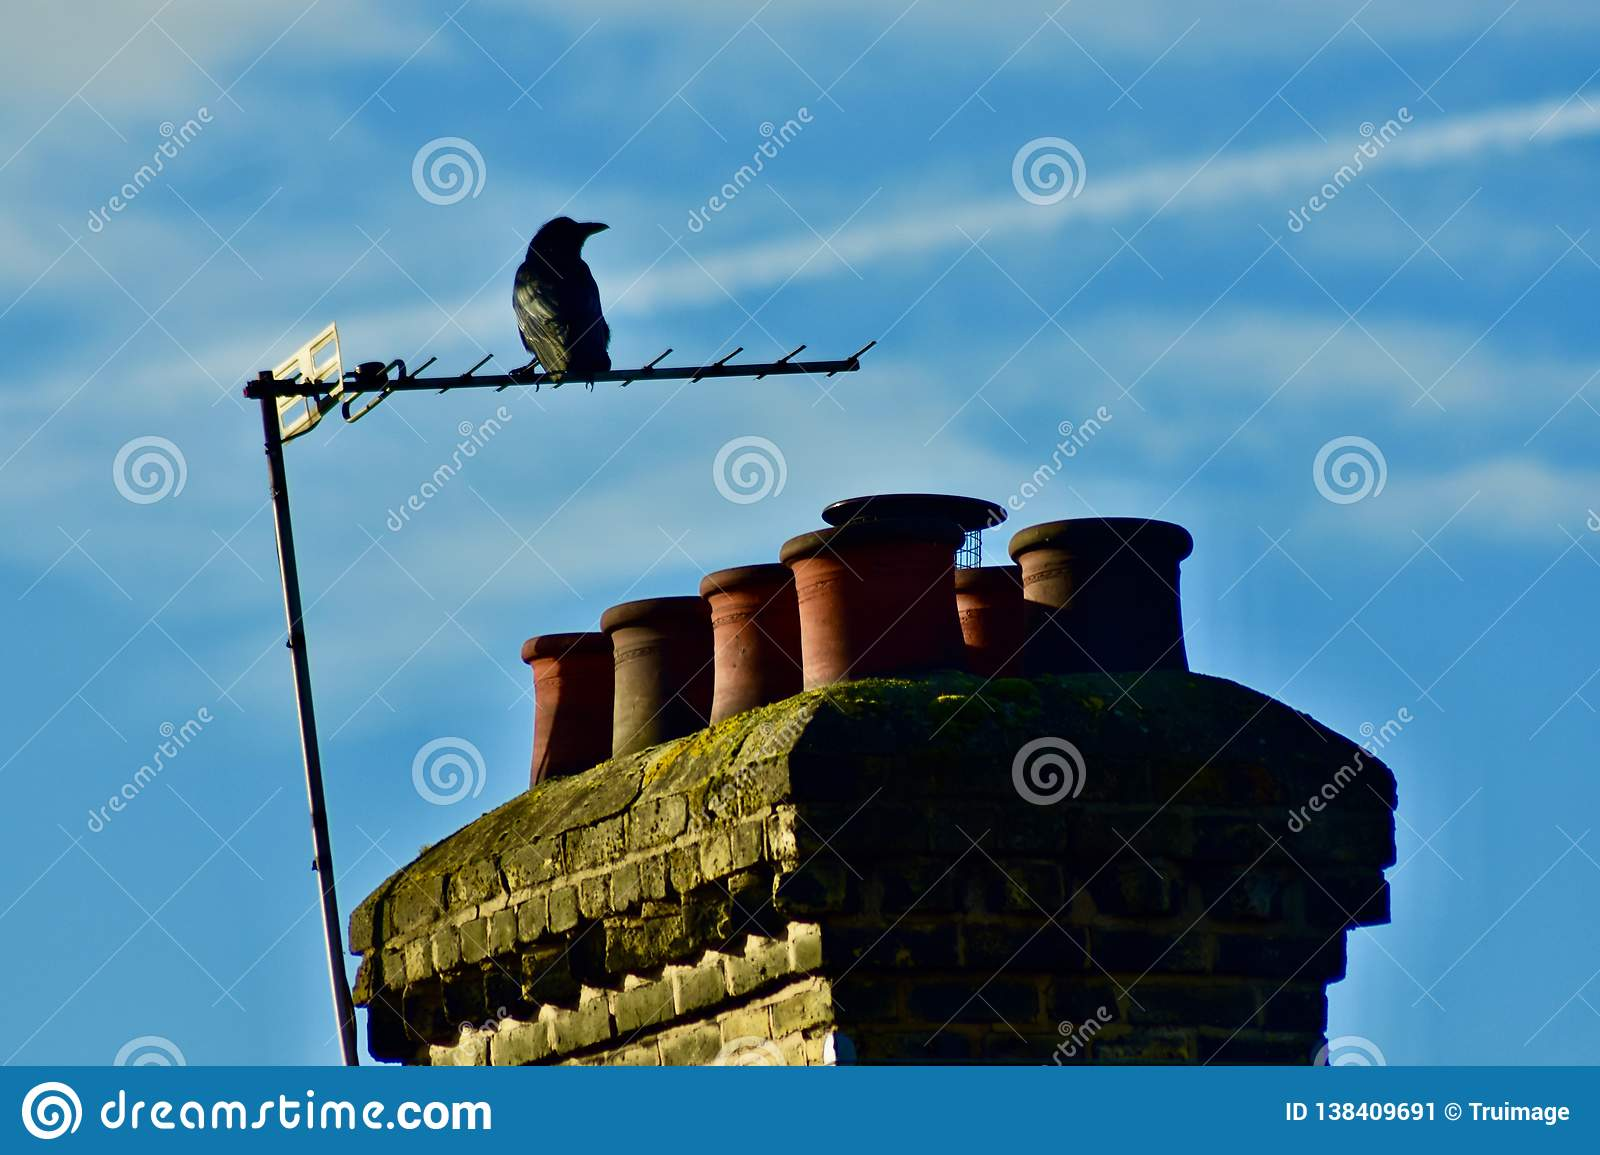 A Crow On An External TV Antenna Stock Image - Image of